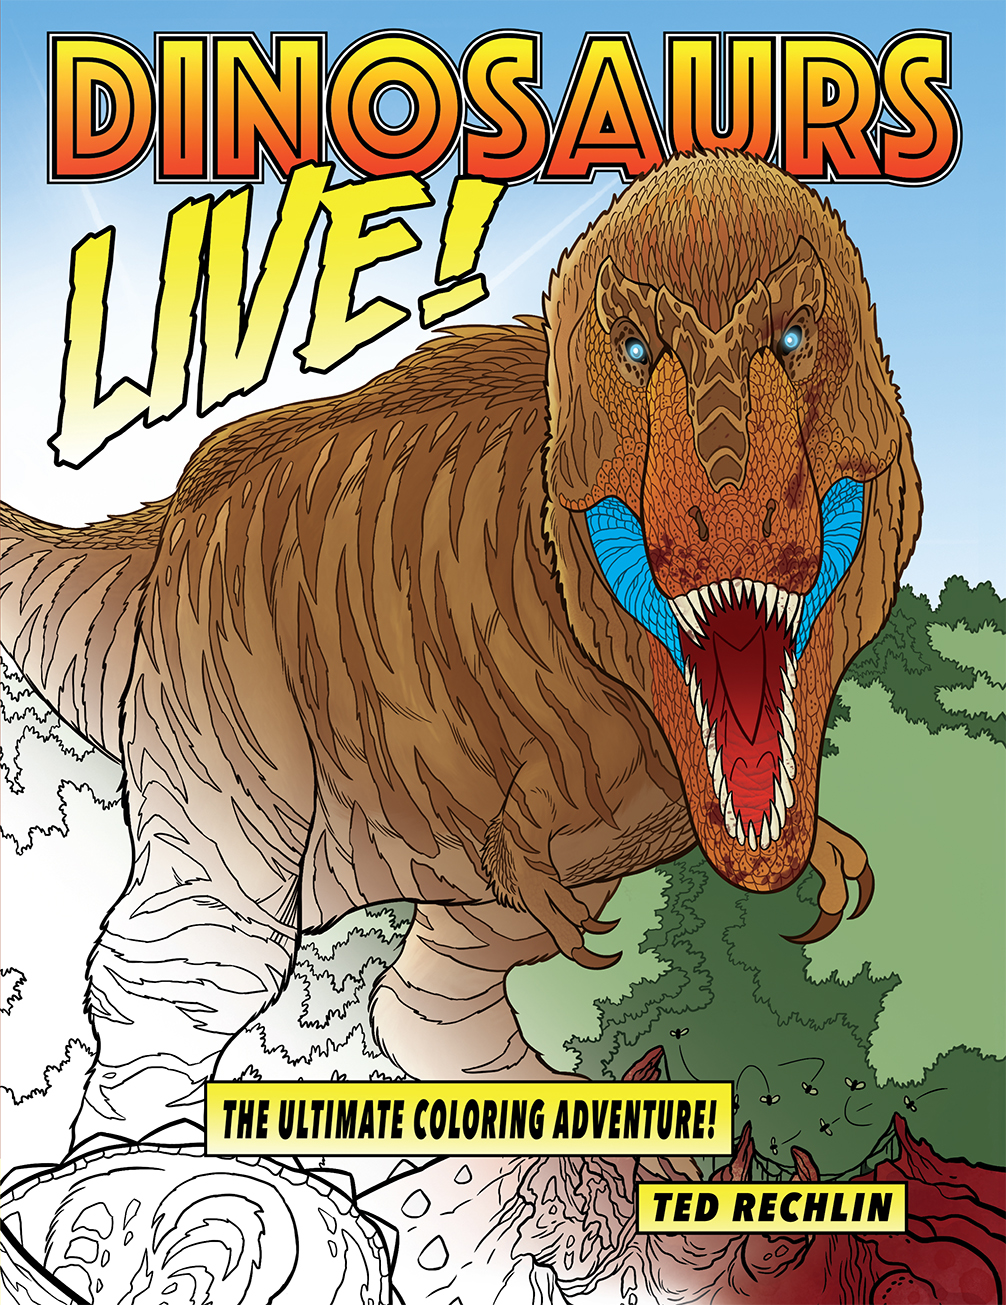 Dinosaurs Live Coloring Adventure from Ted Rechlin